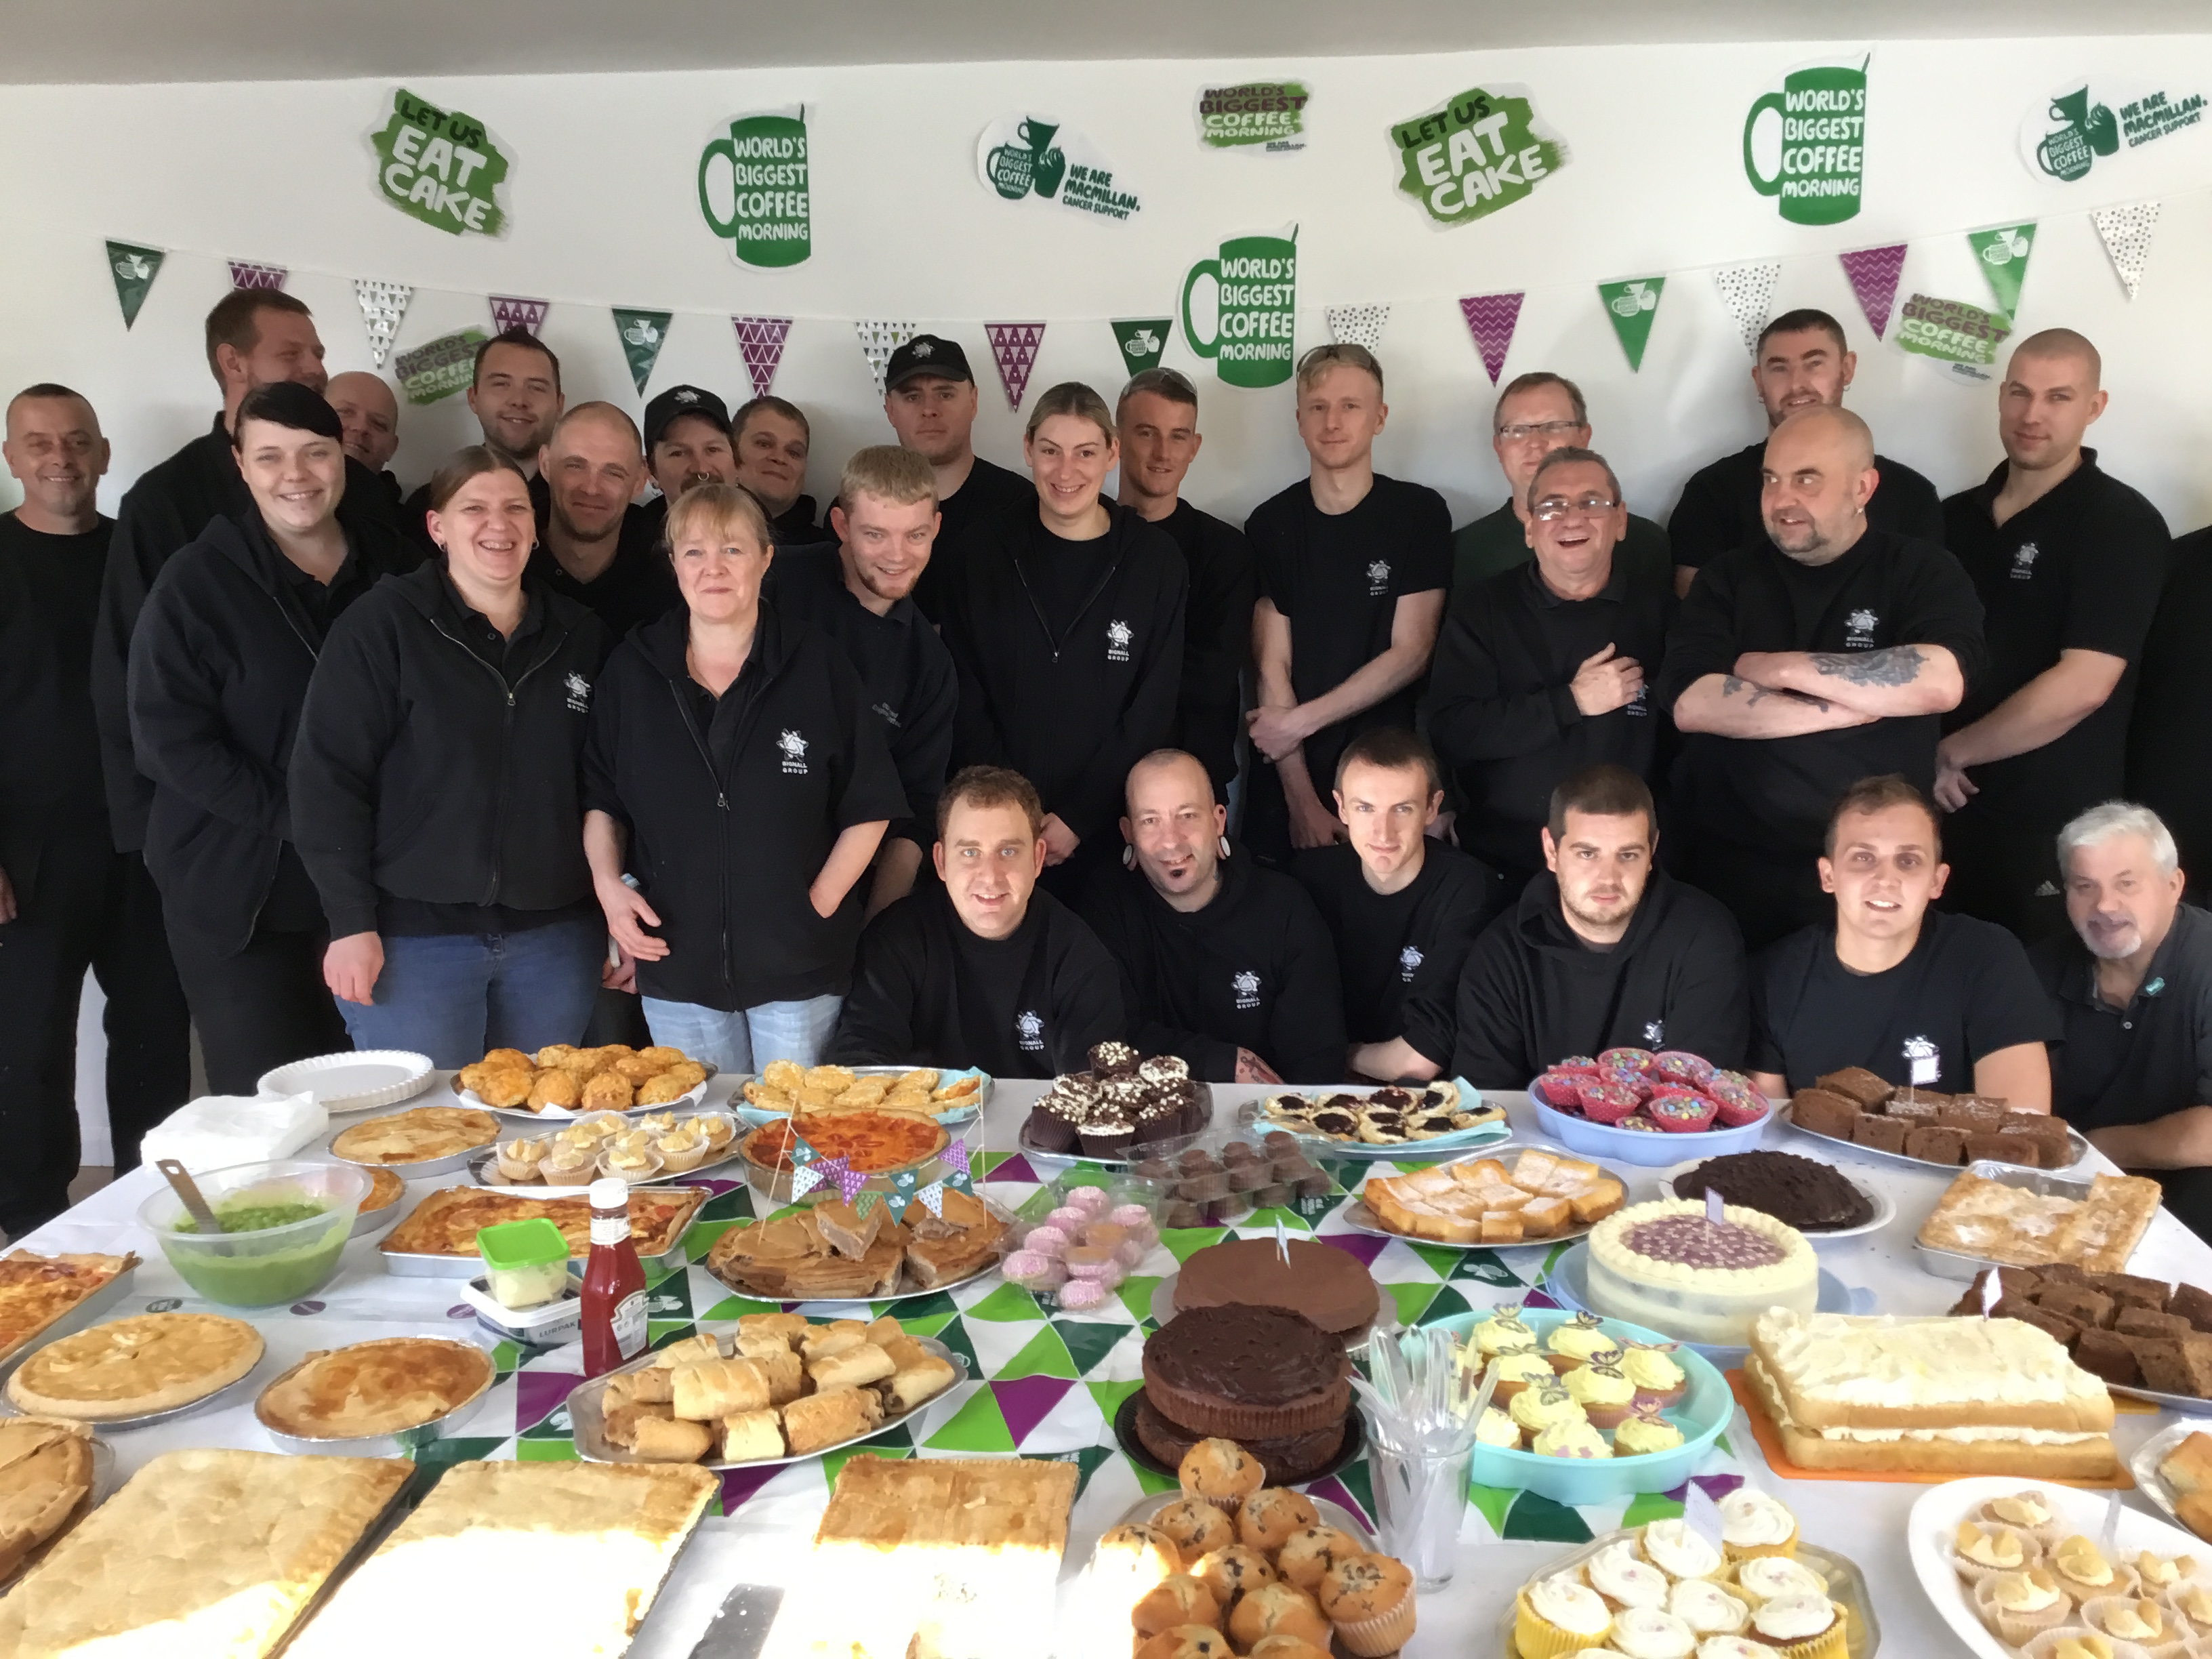 Cobtec raise £515 for Macmillan